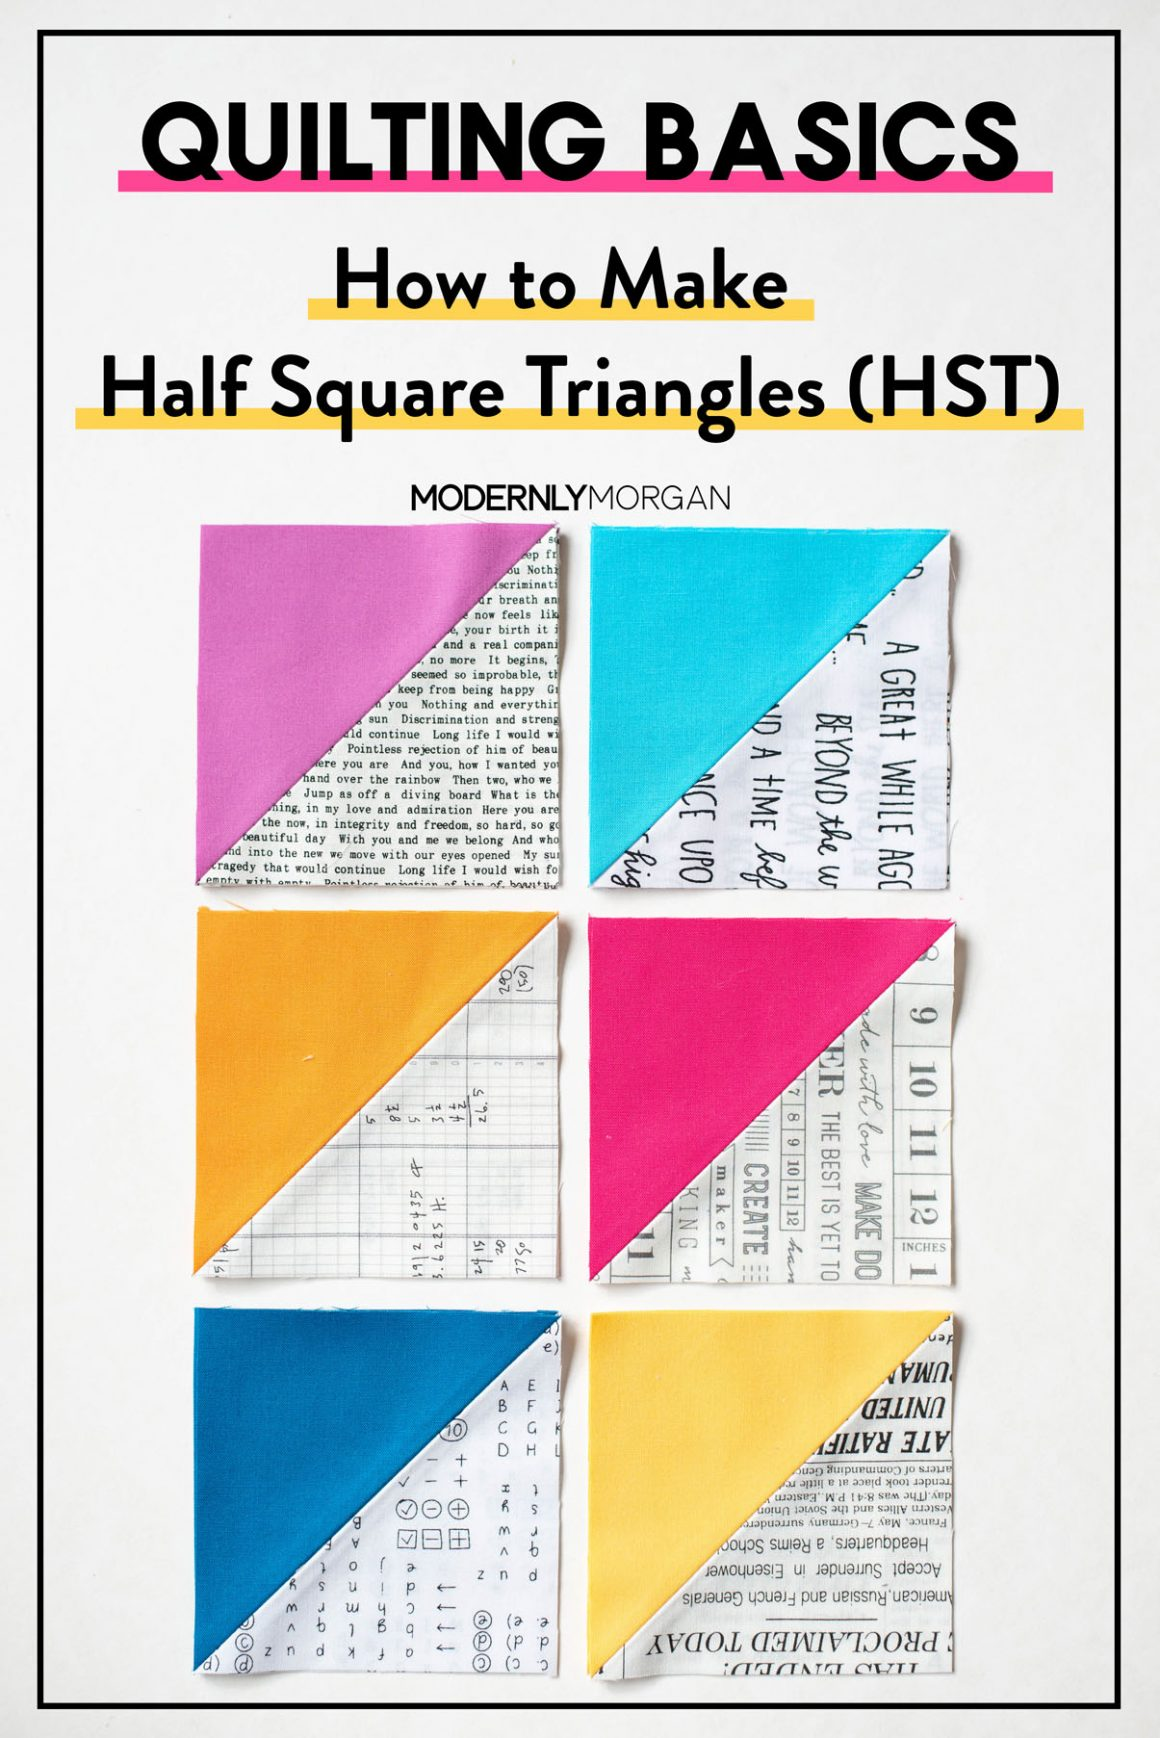 Quilting Basics - How to Make Half Square Triangles (HST) Tutorial